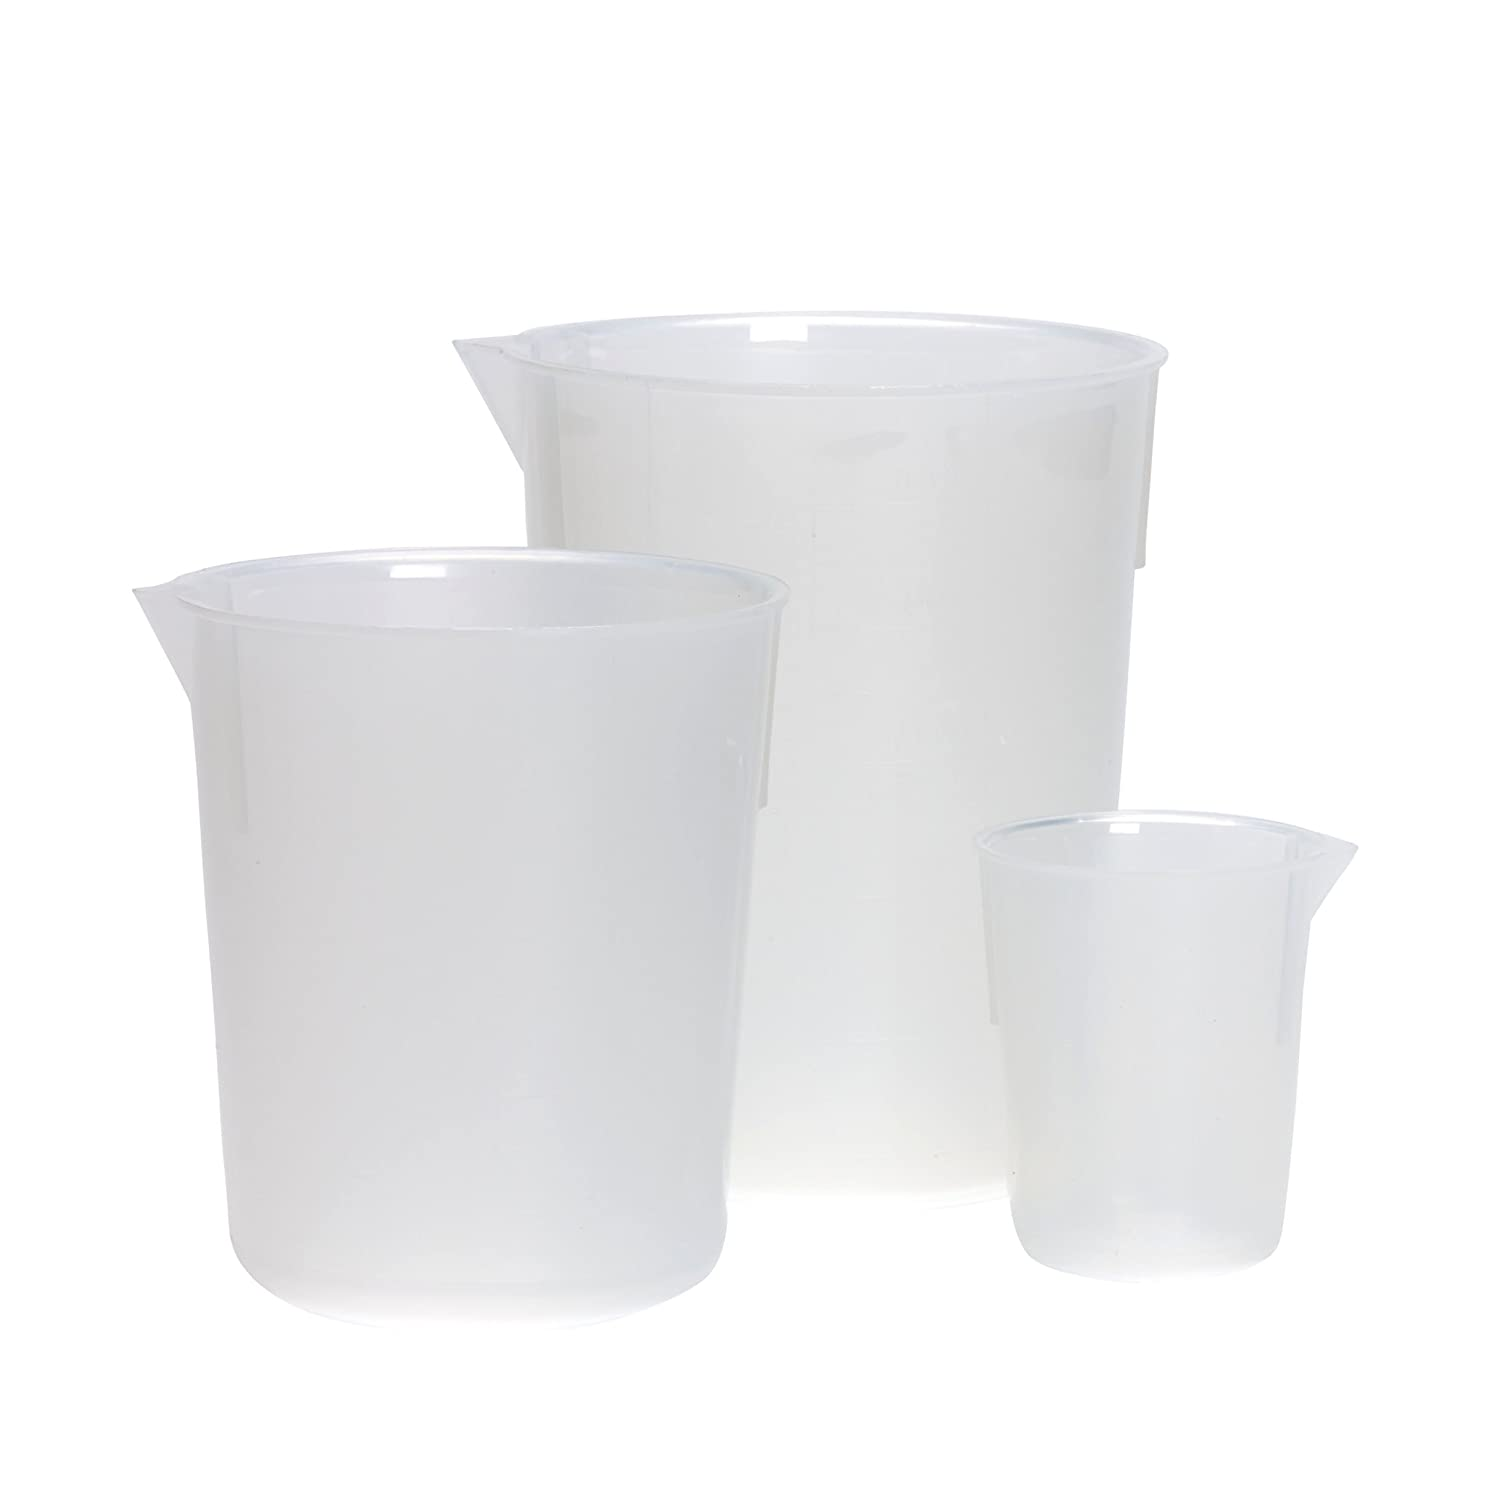 AZLON BPM0400P Plastic, Tapered Beakers, Moulded Grads A-Z, PP, 400 ml (Pack of 10) free shipping